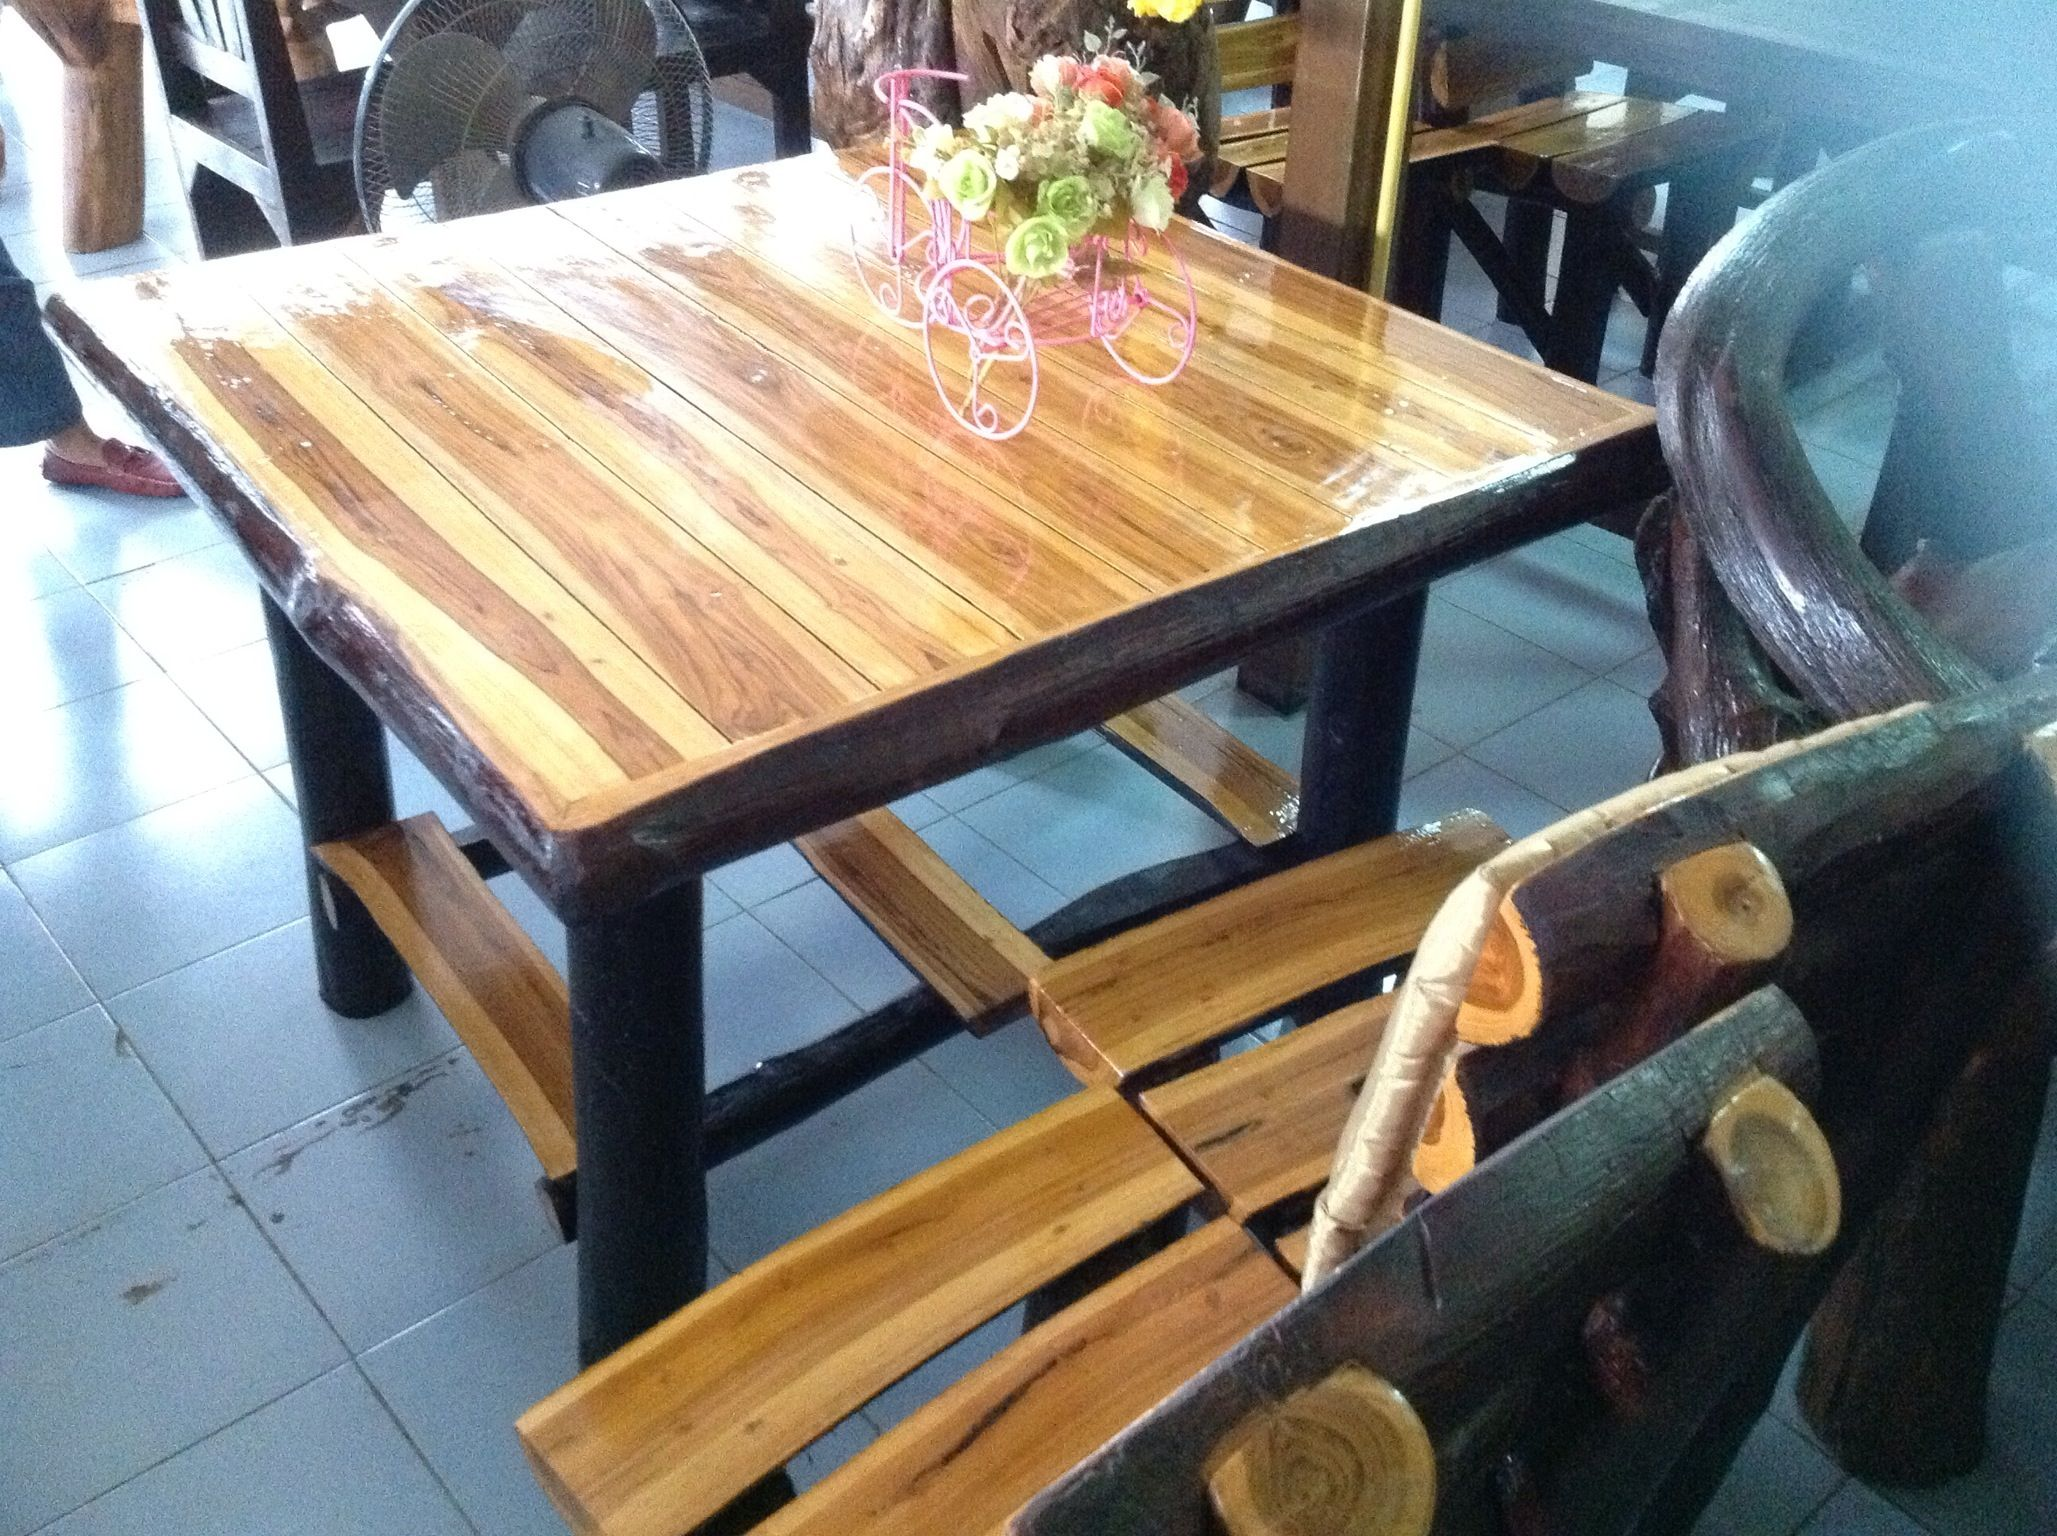 Handcrafted Teak Wood Dining Table From Chiang Mai Thailand Dining Table Wood Dining Table Rustic Dining Table